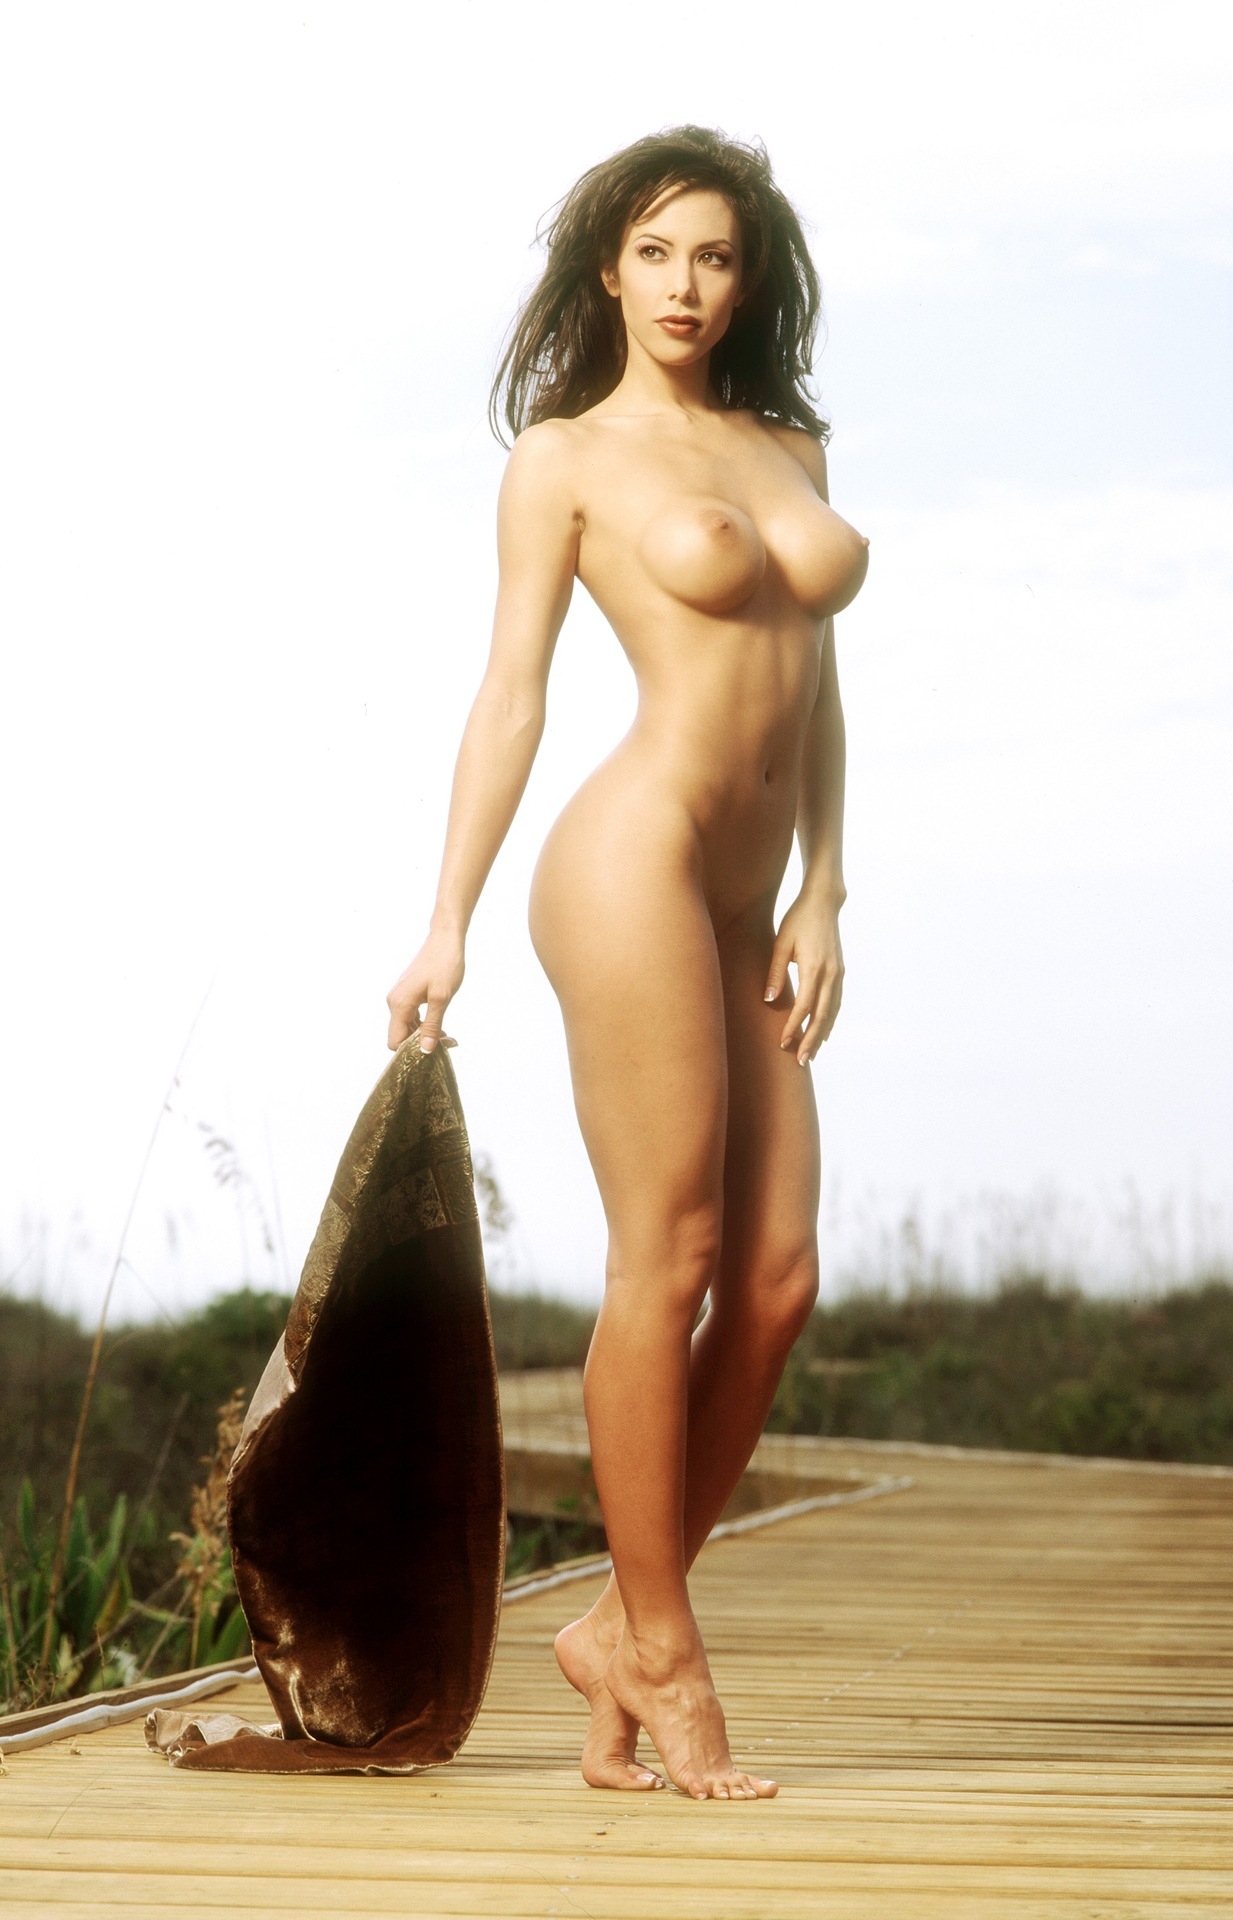 free pics from nudist camps